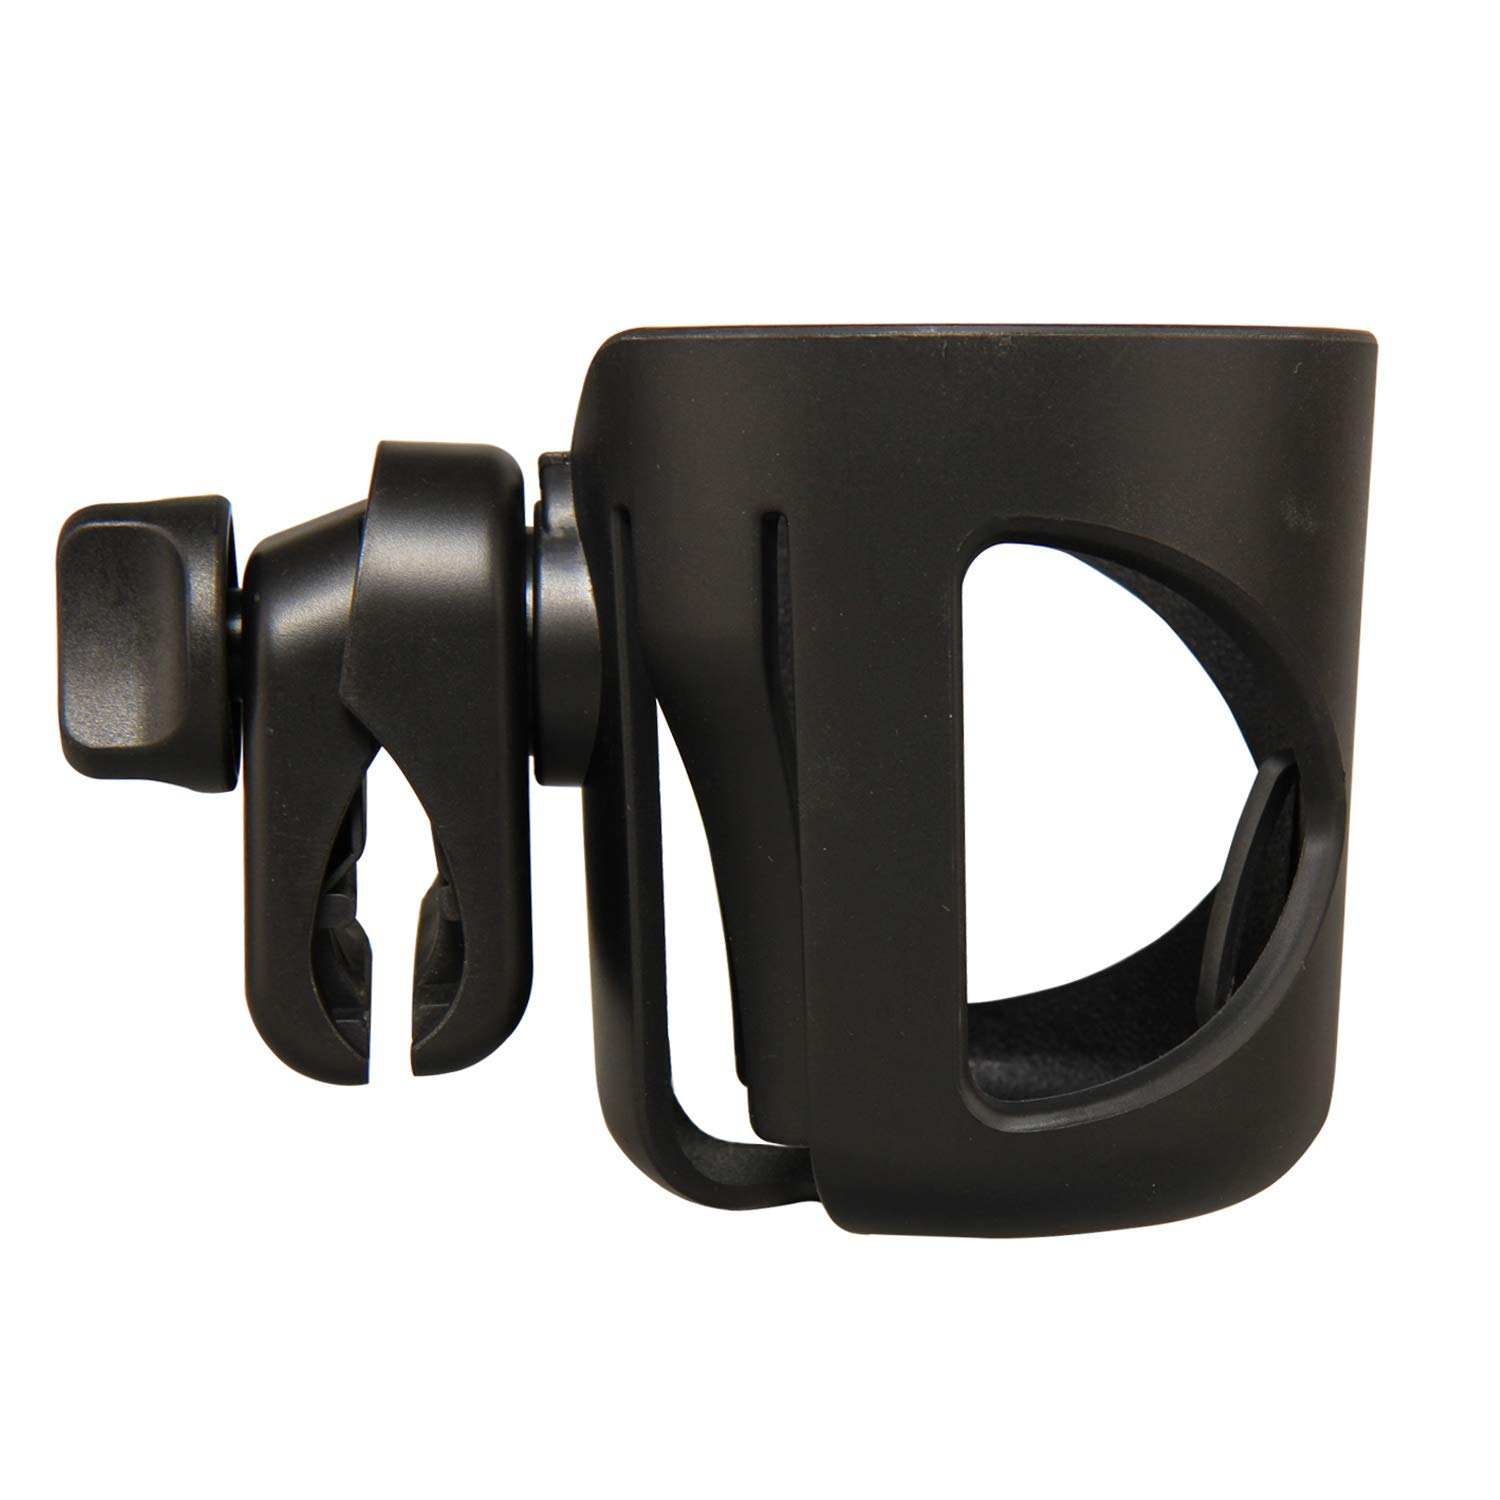 Water Bottle Drink Cup Holder Mount Cages for Motorcycle Bicycle Baby Strol Gs